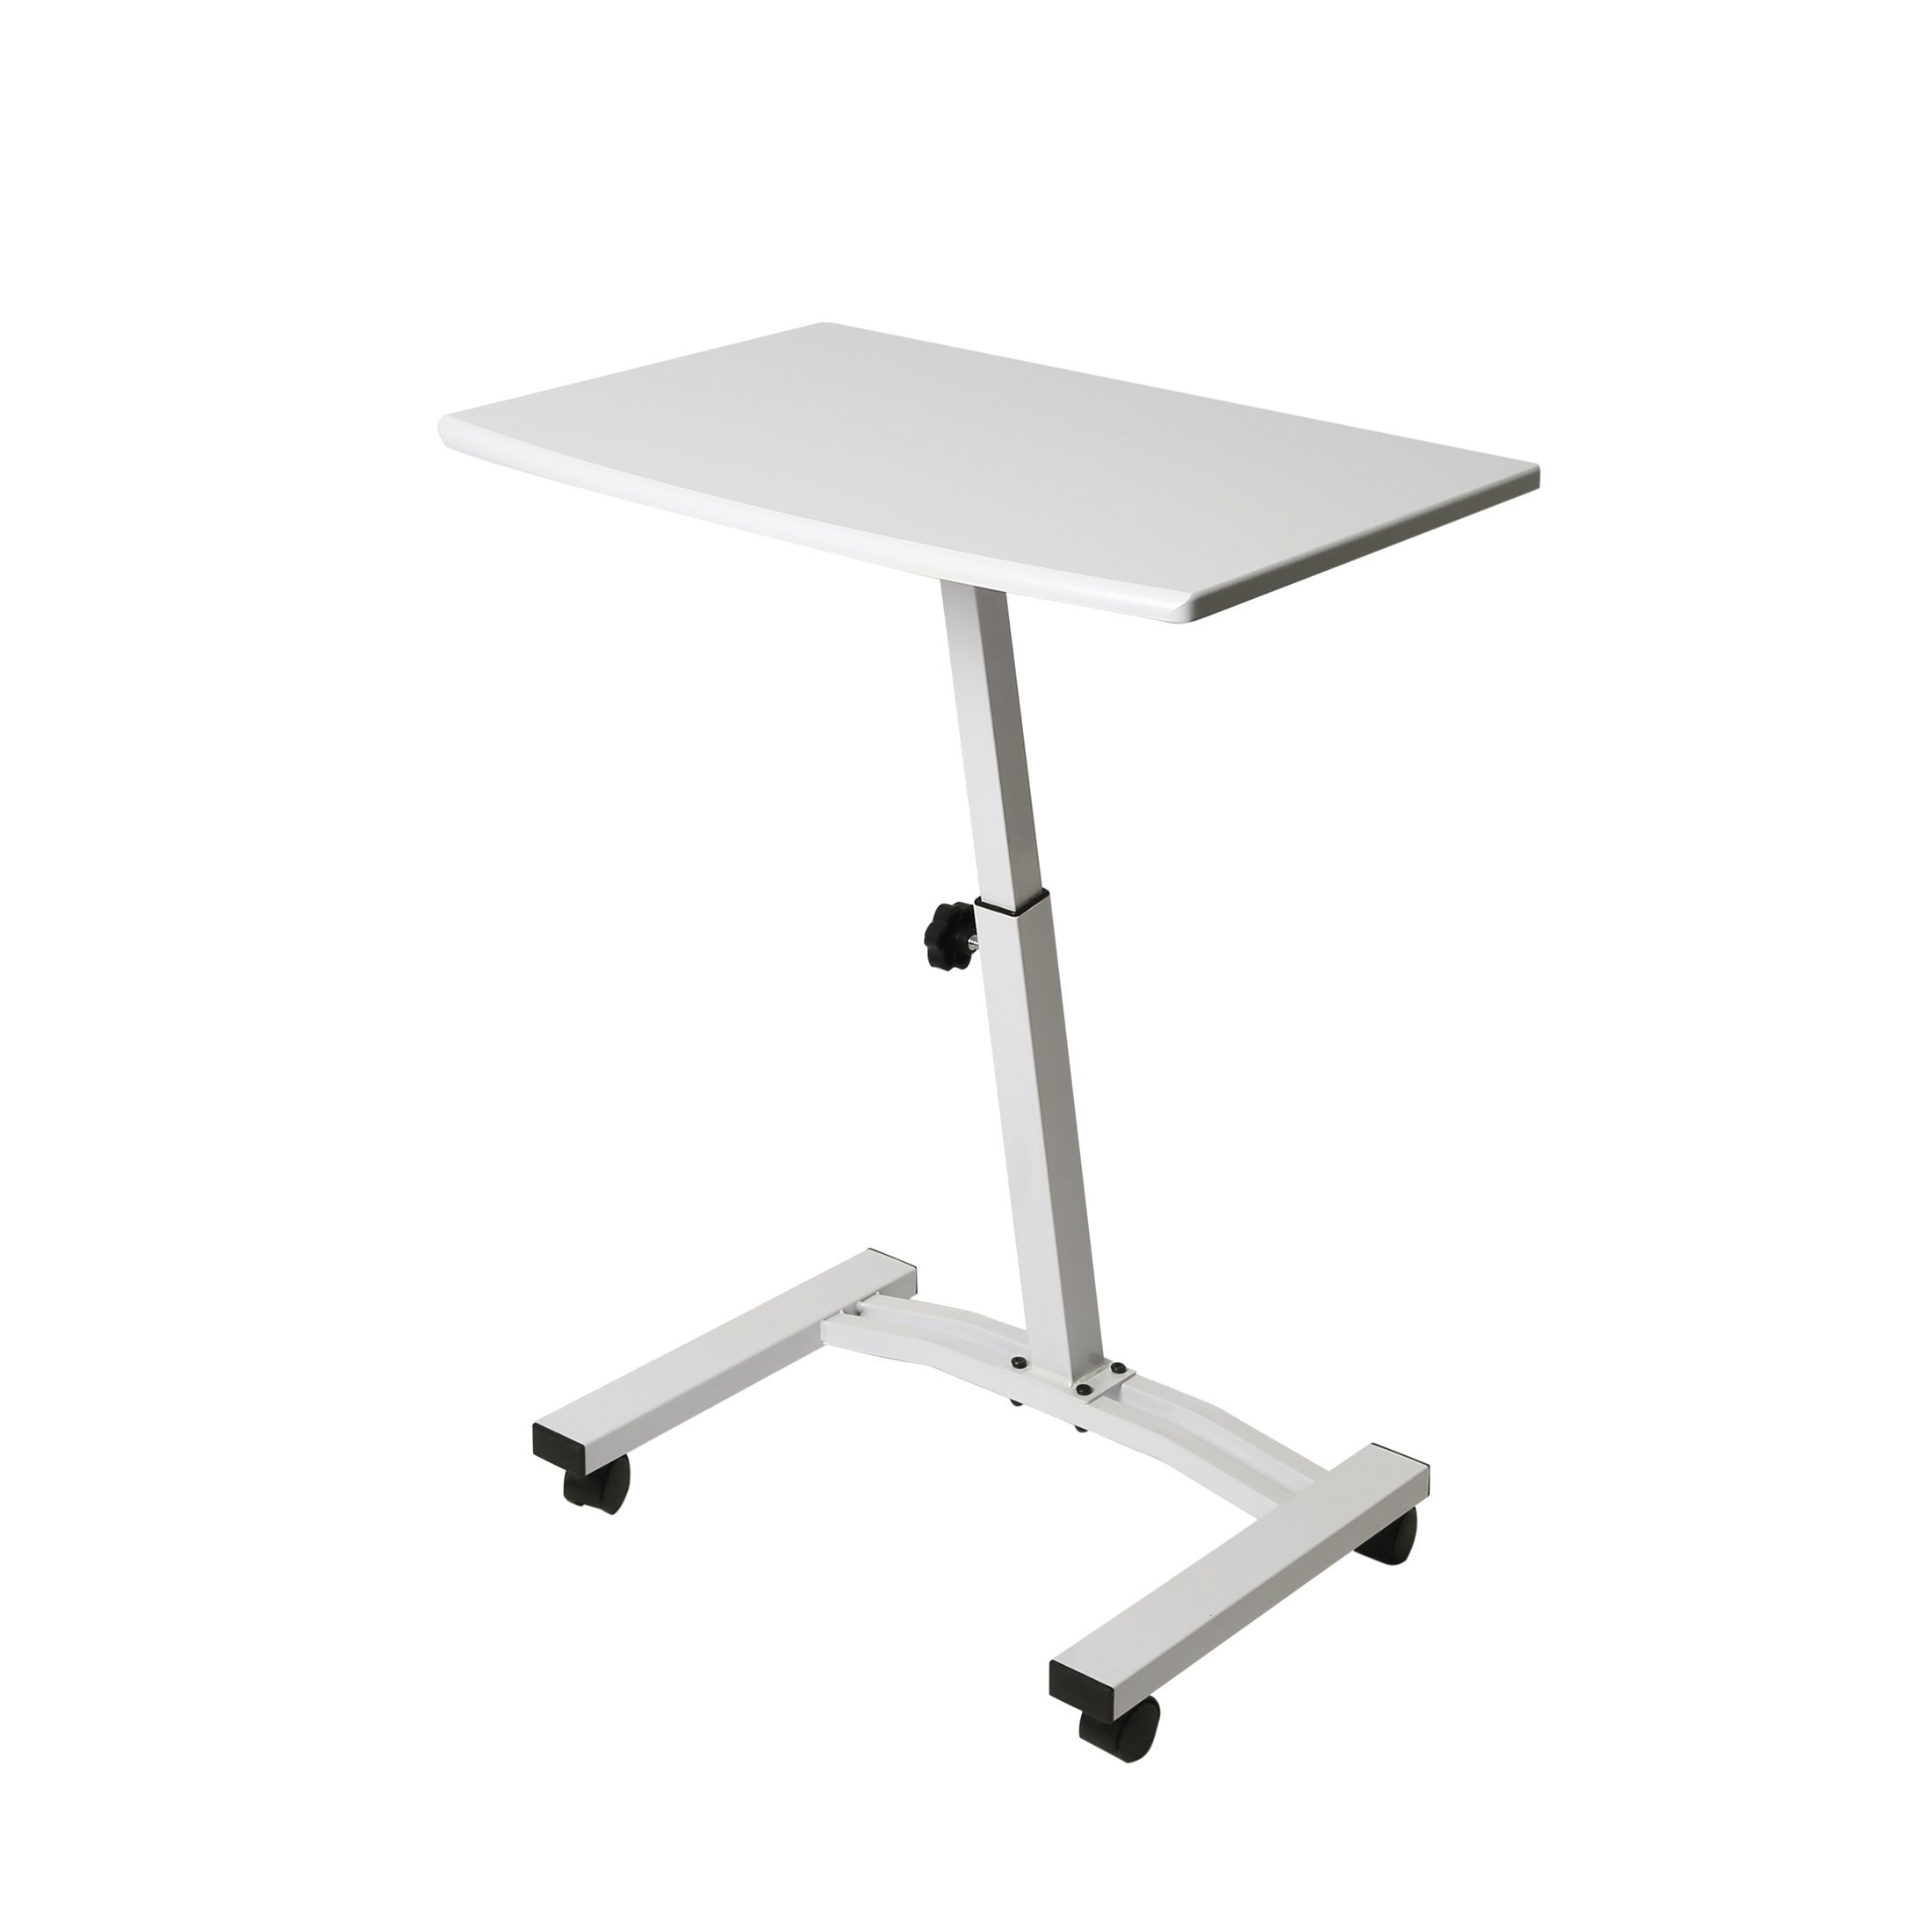 Seville Classics OFF65855 Mobile Laptop Computer Desk Sit Stand, Height-Adjustable from 20.5'' to 33'', White